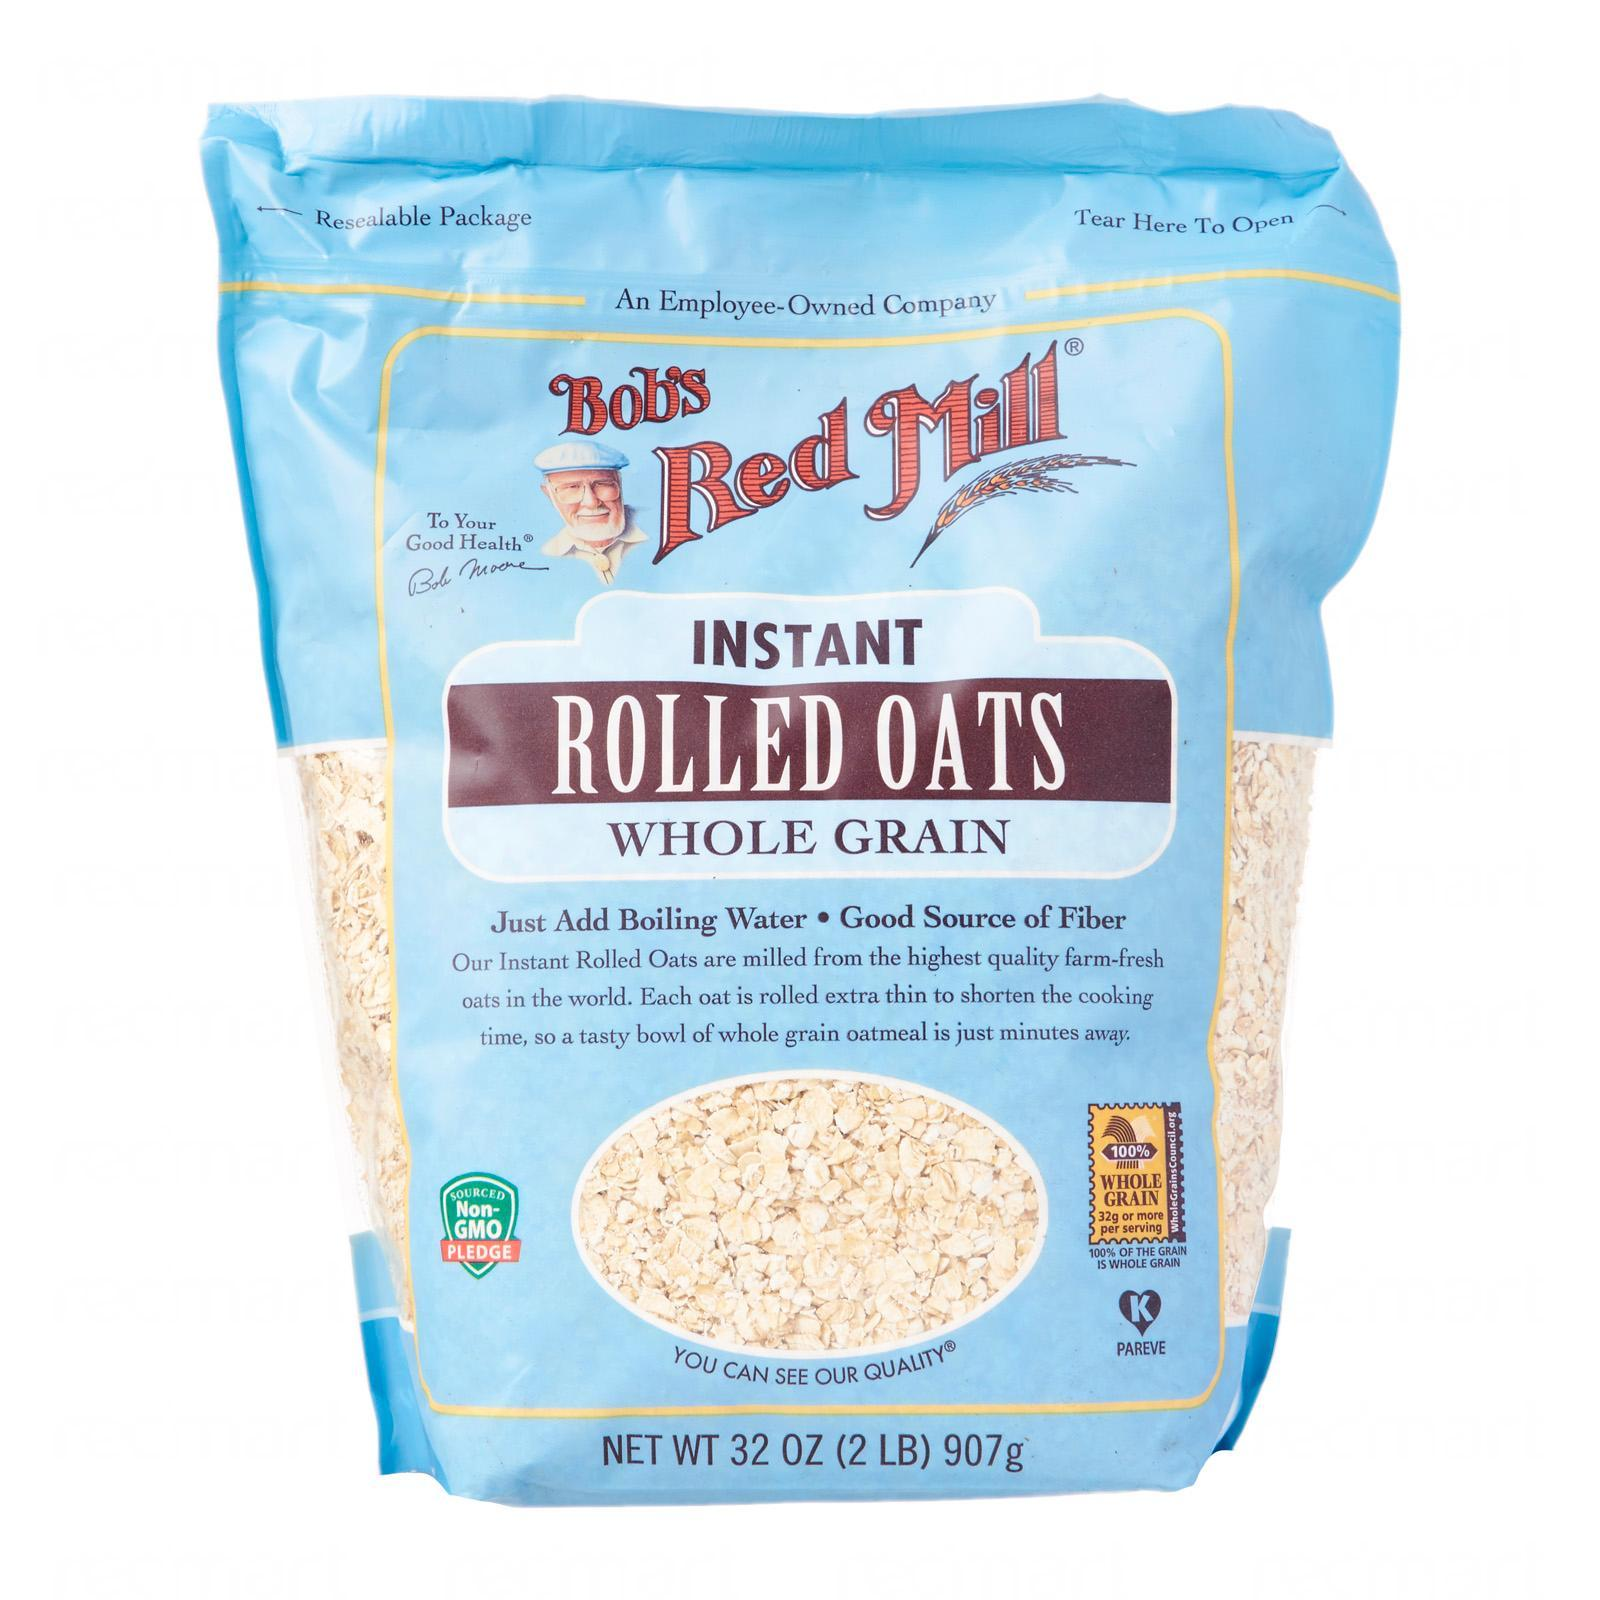 Bob's Red Mill Whole Grain Instant Rolled Oats